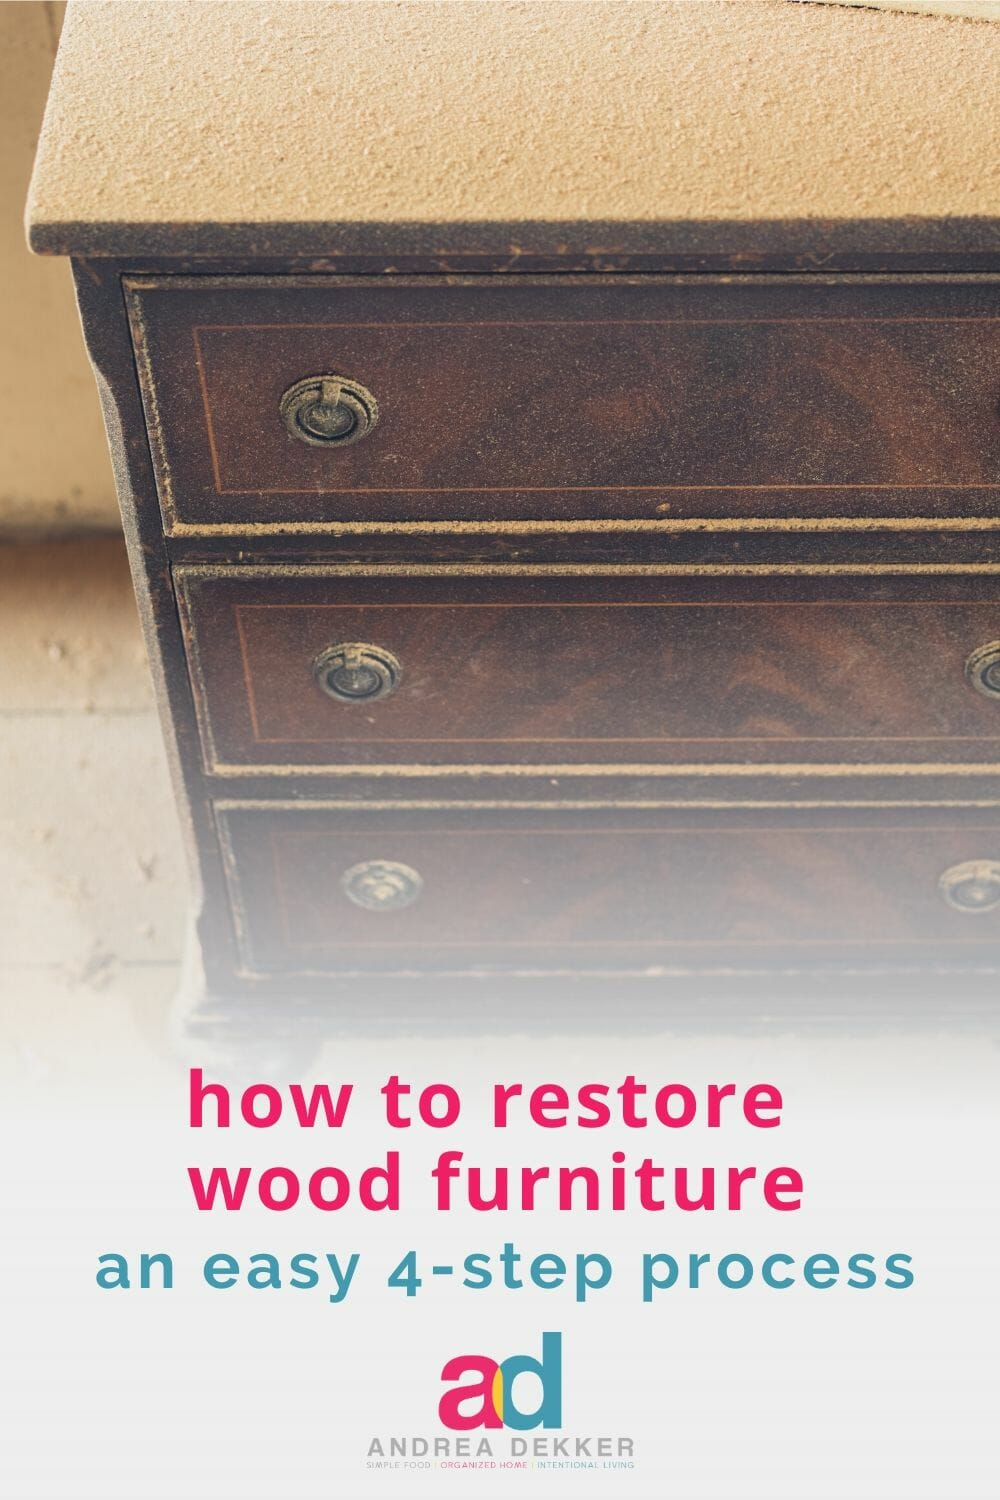 Learn how simple wood furniture restoration can be with this easy 4-step process. Bring a little life back to your favorite wood furniture -- no elbow grease or expensive products required! via @andreadekker